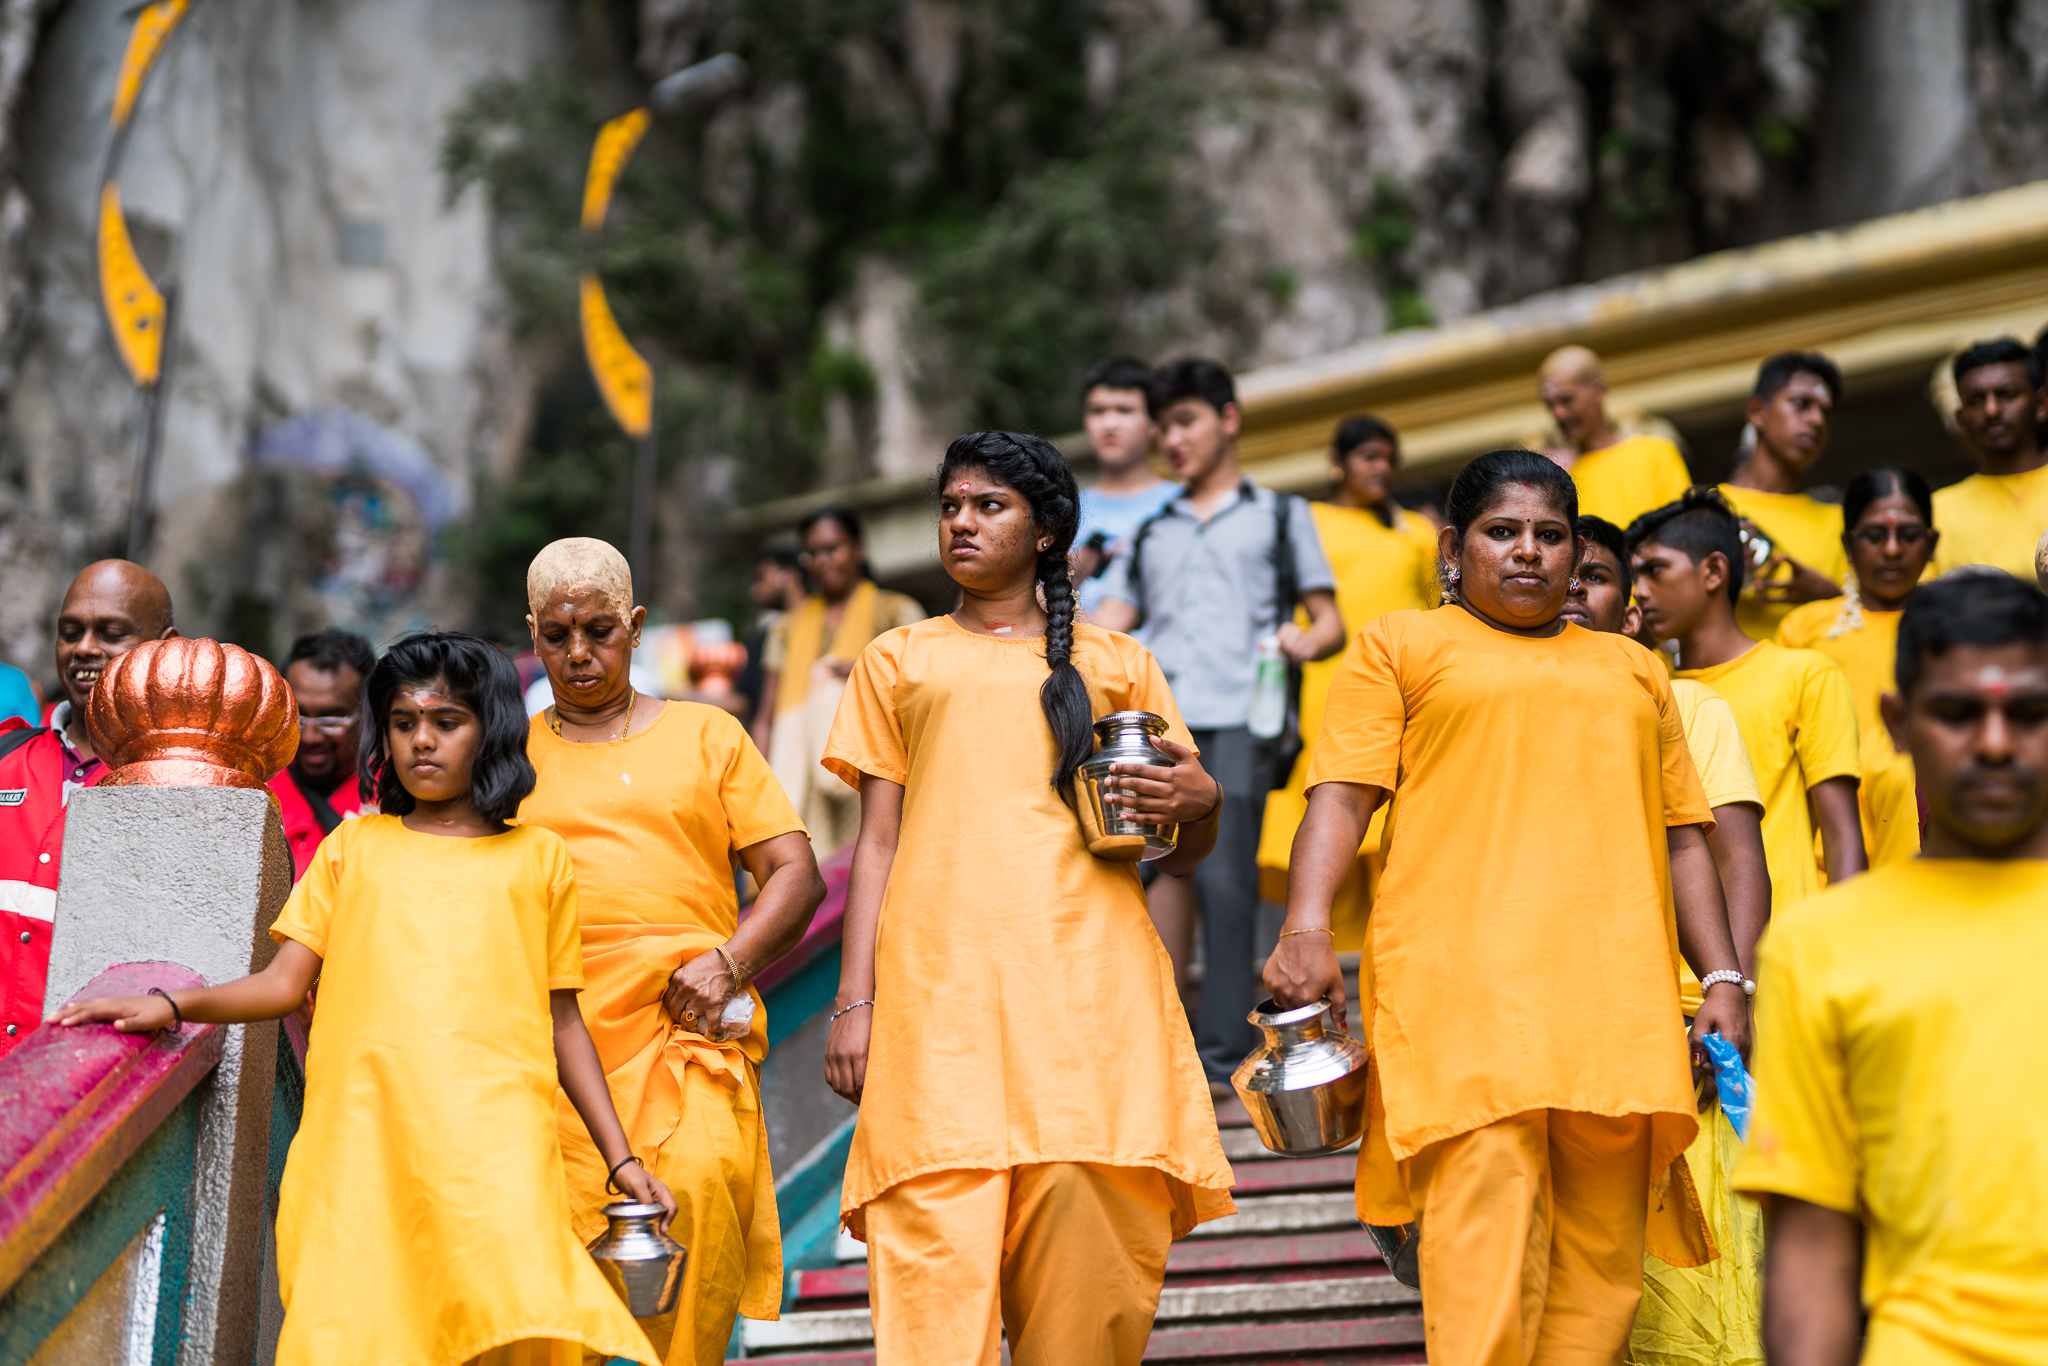 A family dressed in yellow descends the stairs.